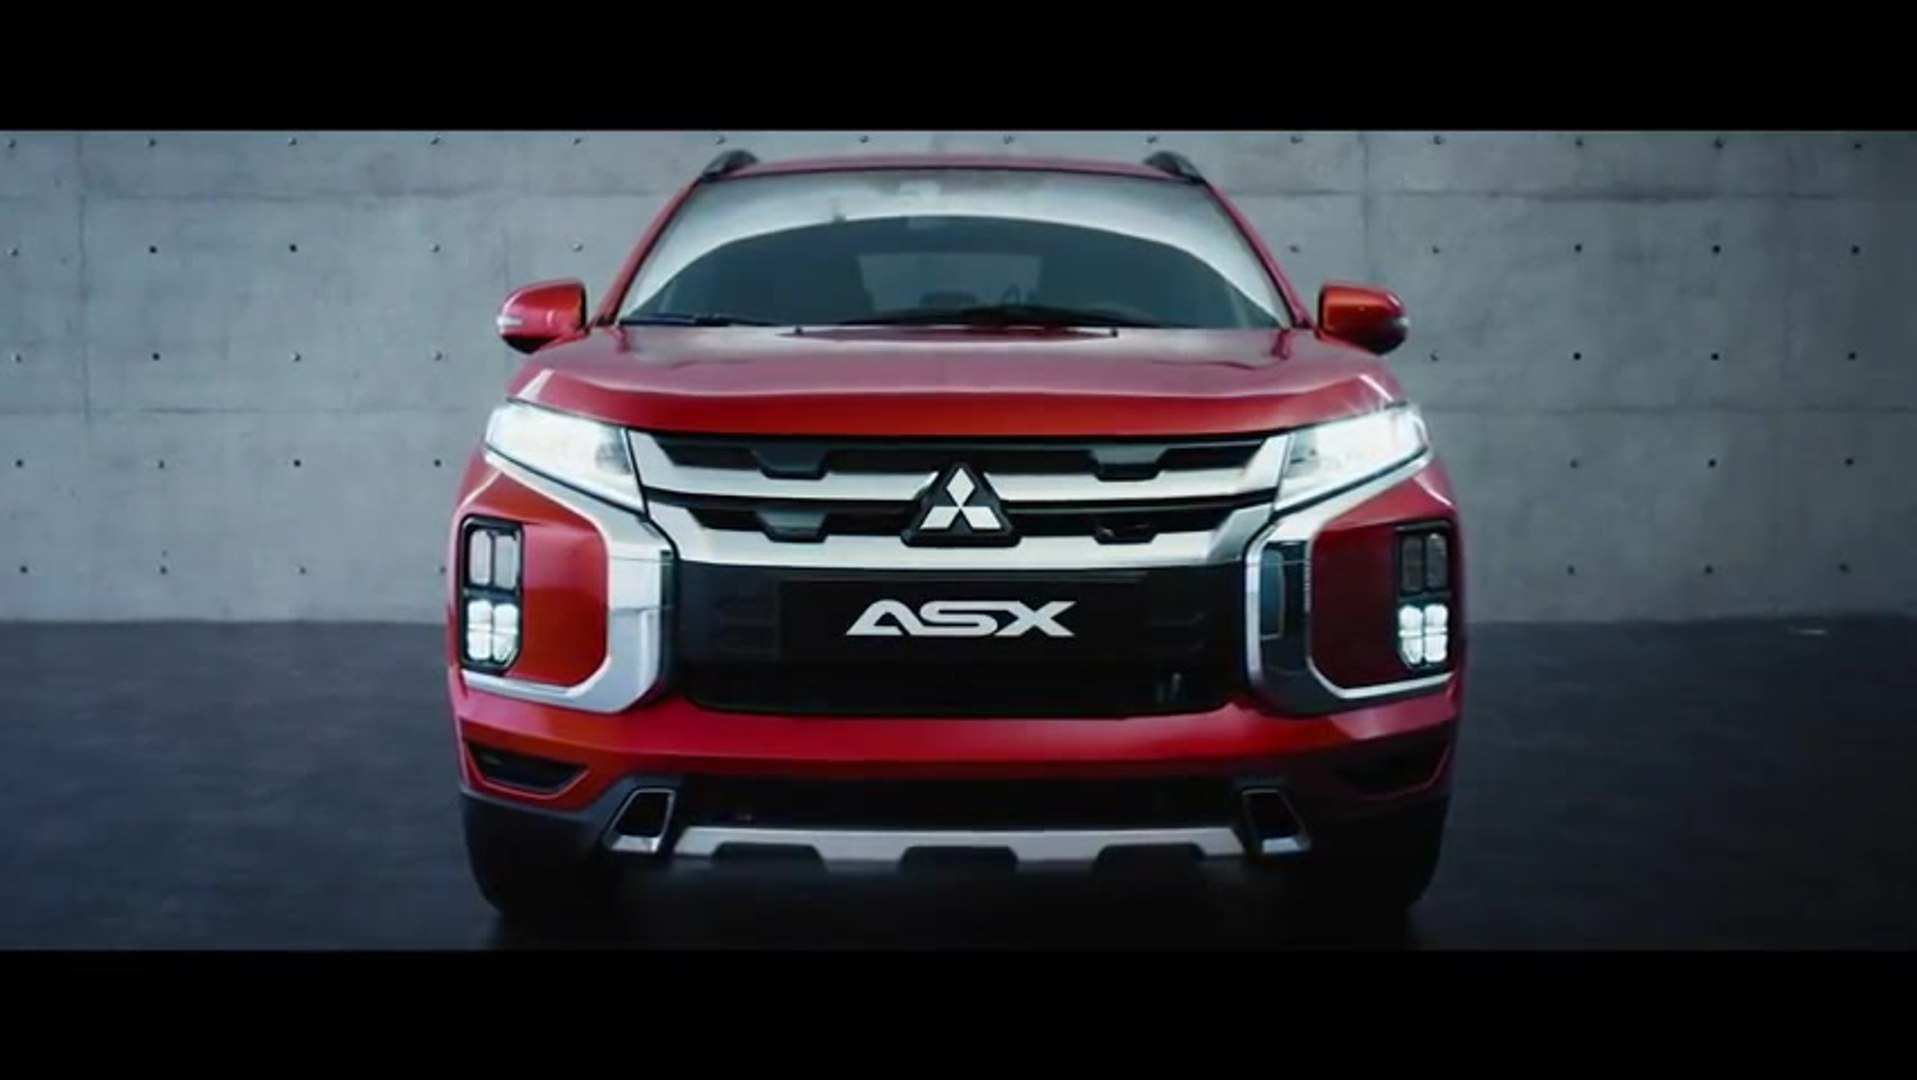 60 New Mitsubishi Asx 2020 Philippines Concept with Mitsubishi Asx 2020 Philippines